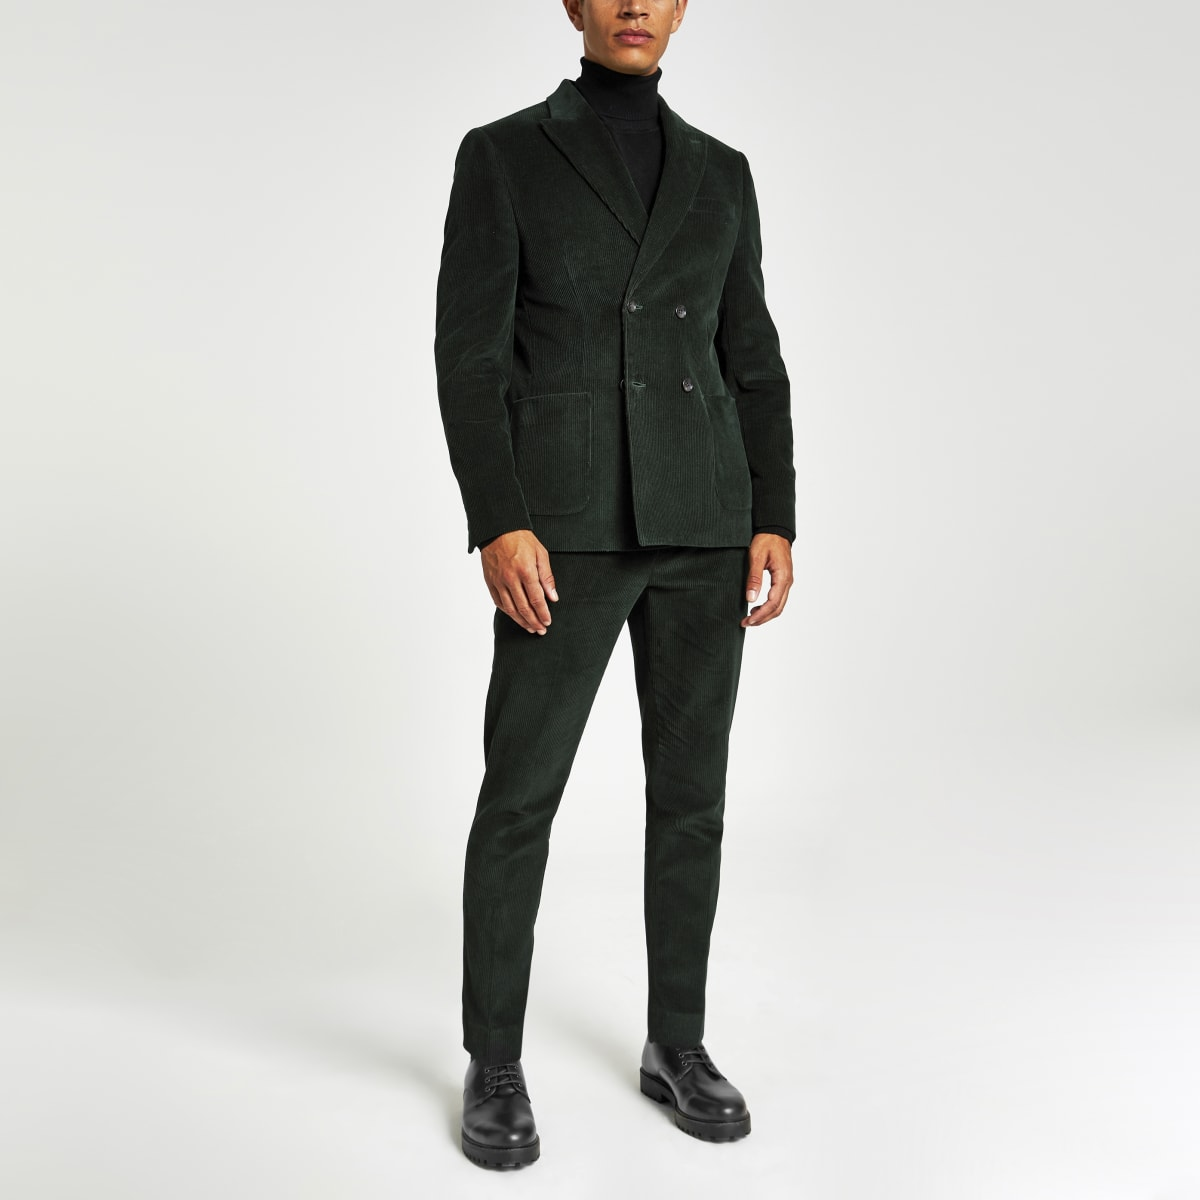 Green cord skinny suit trousers